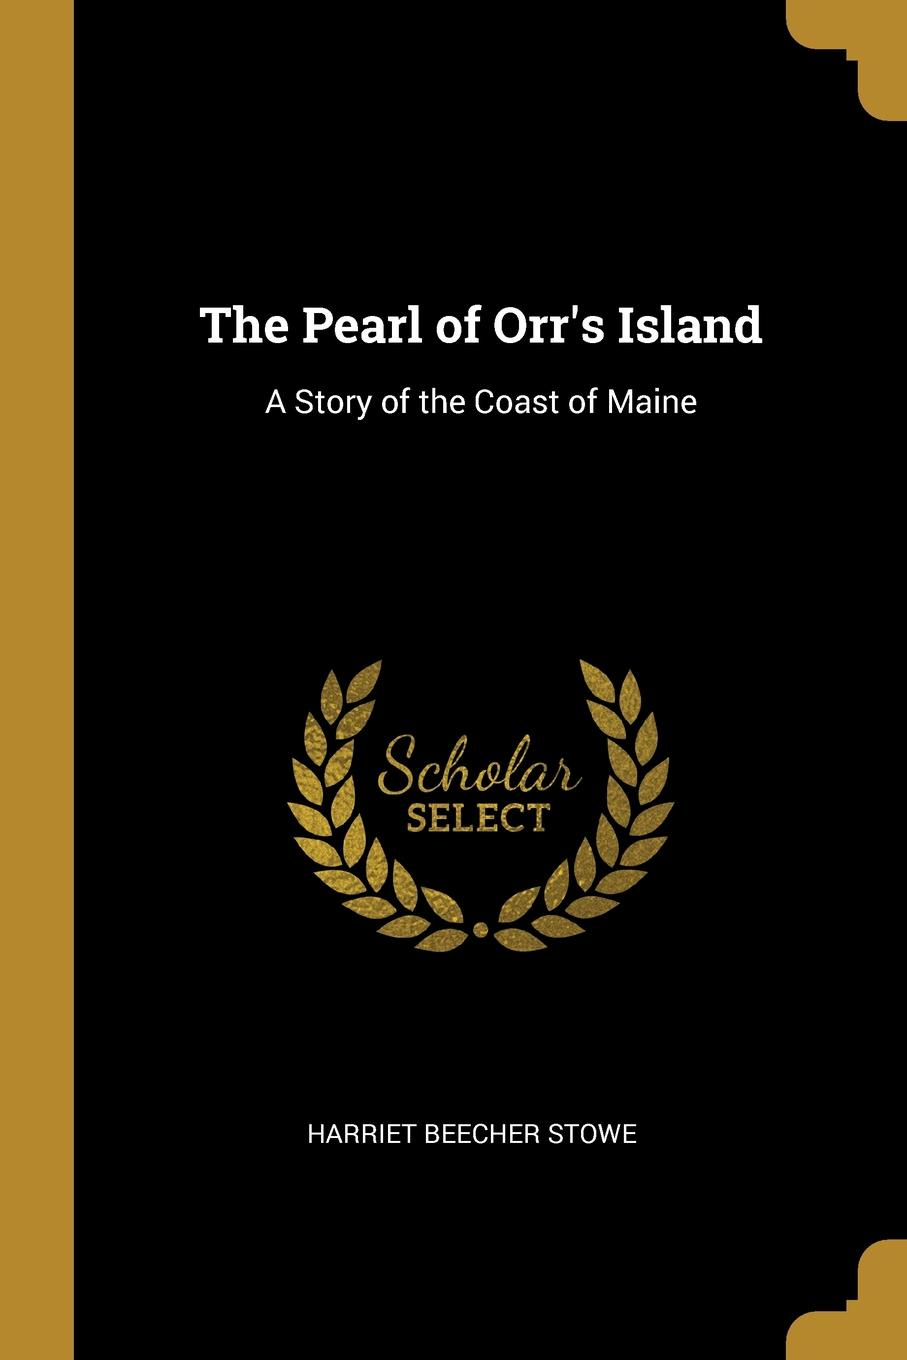 Harriet Beecher Stowe The Pearl of Orr.s Island. A Story of the Coast of Maine